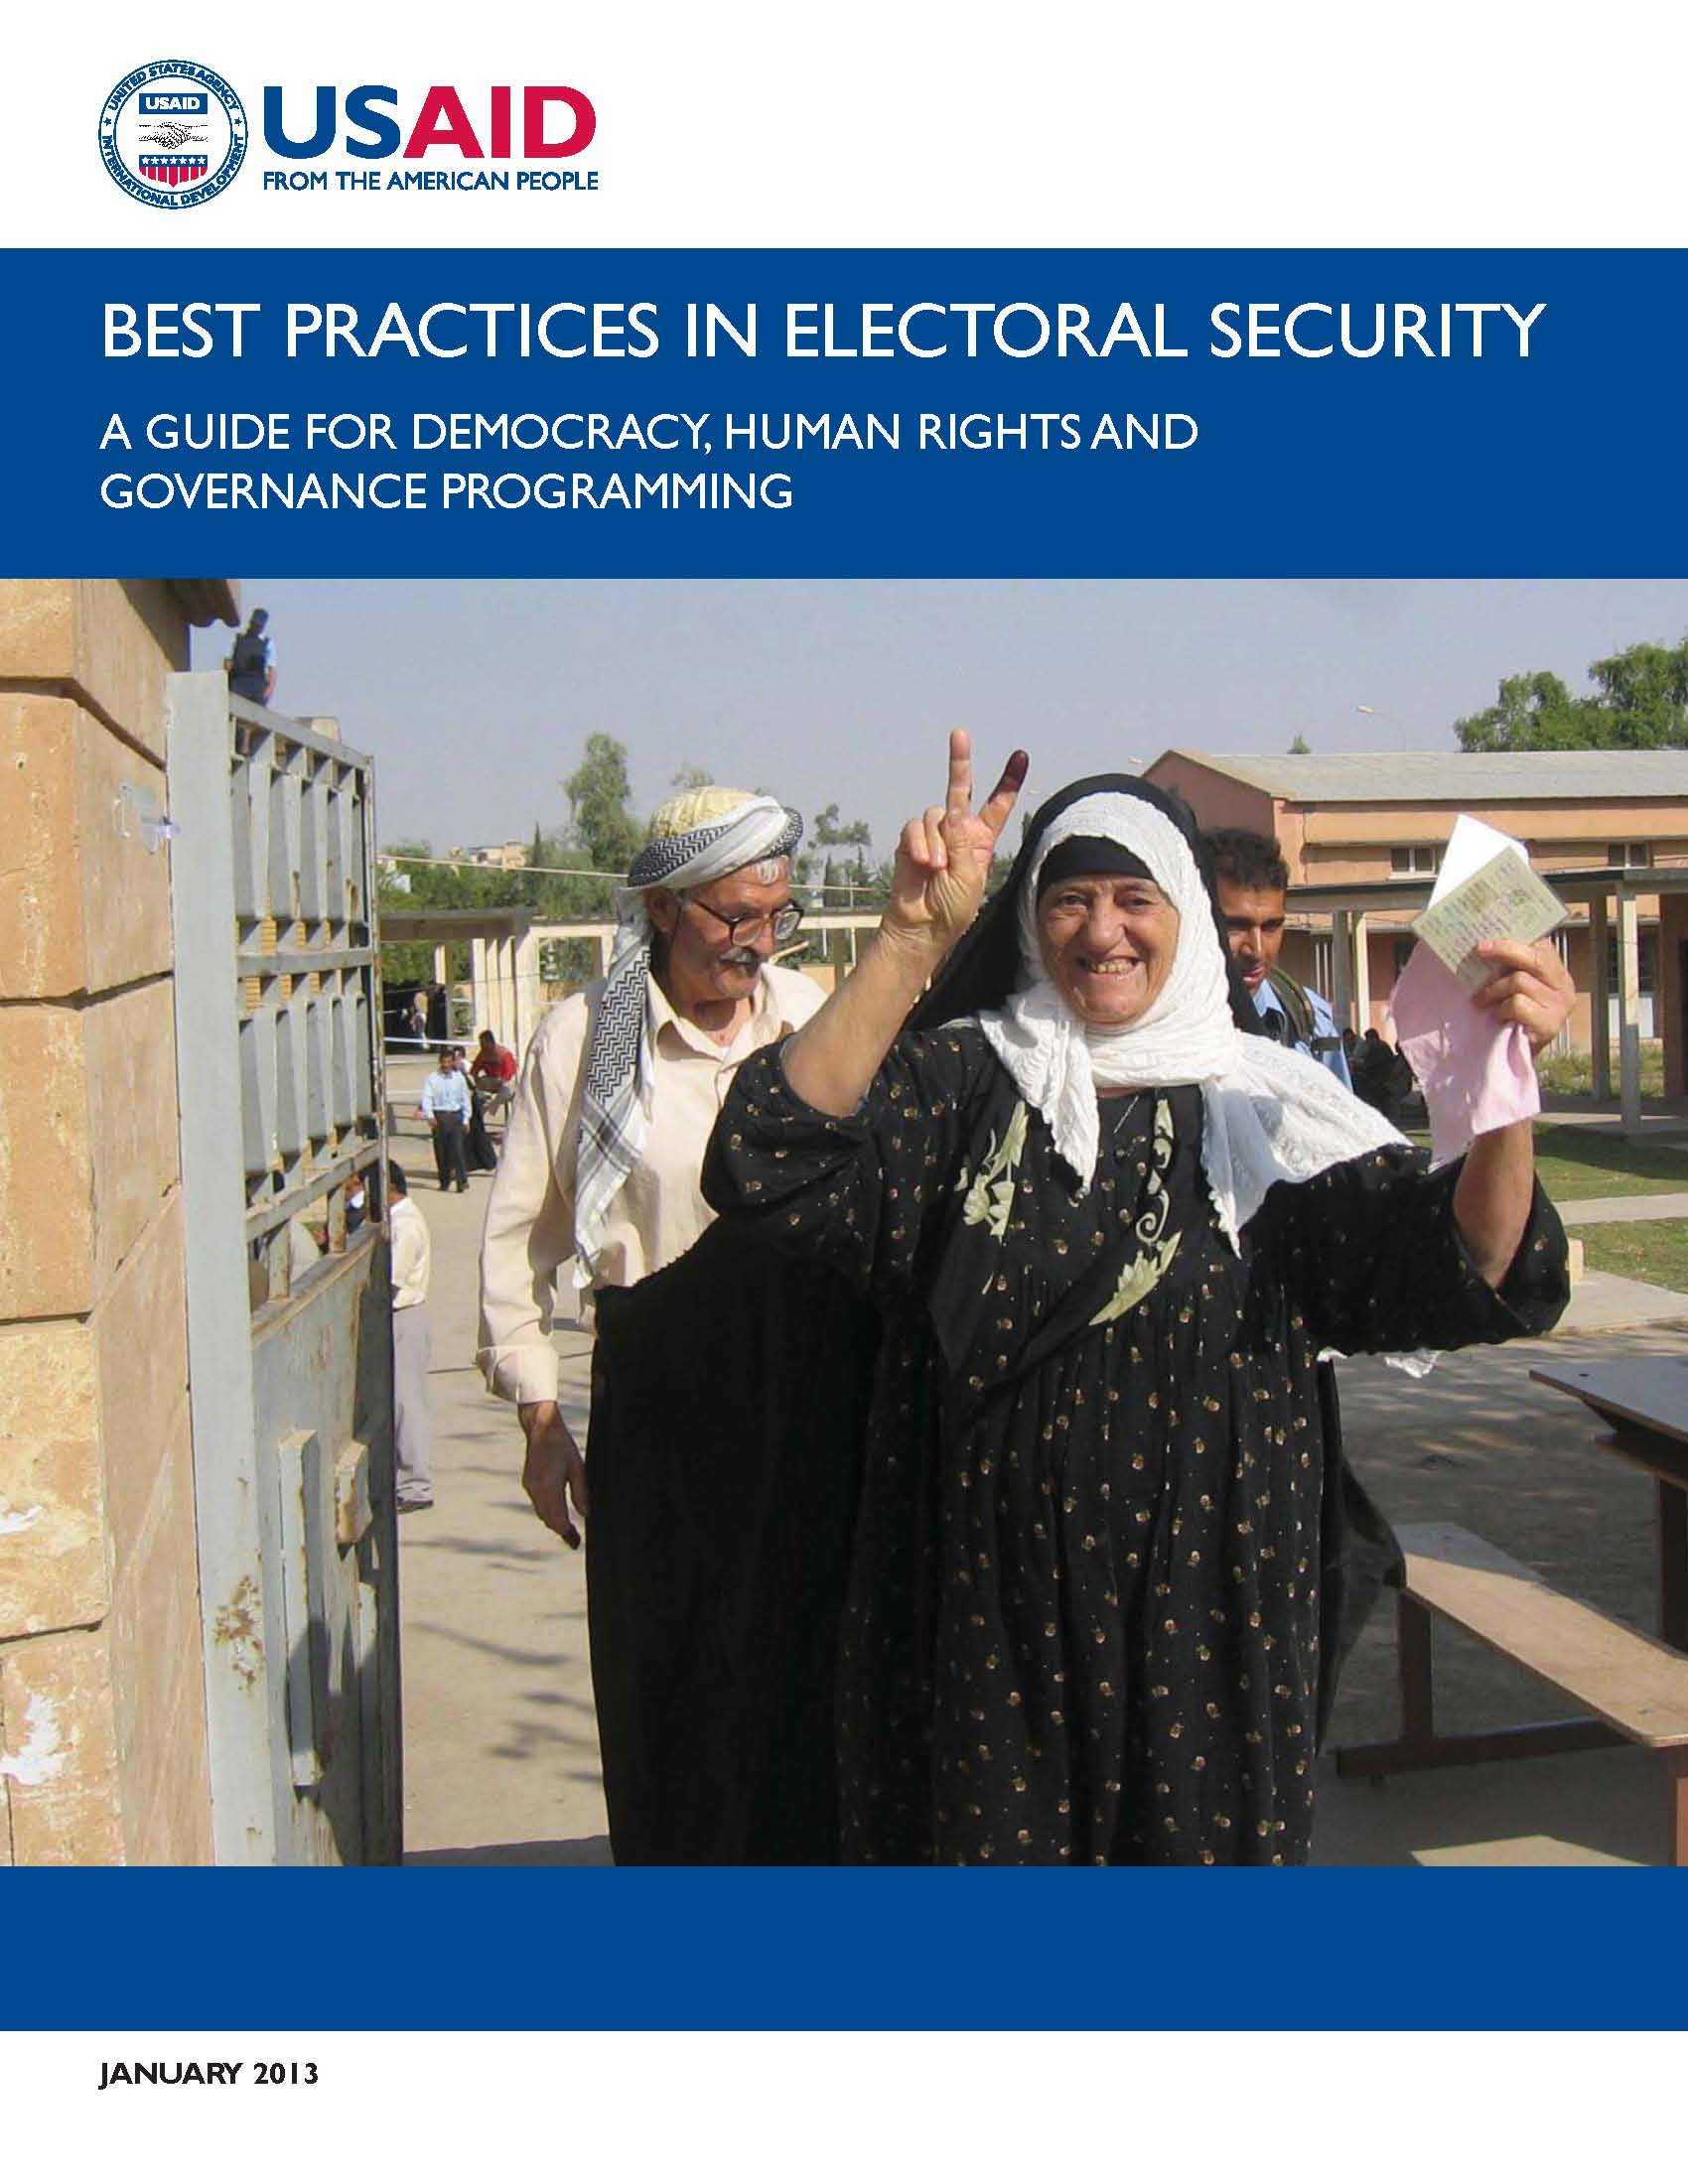 Electoral Security Best Practices Guide